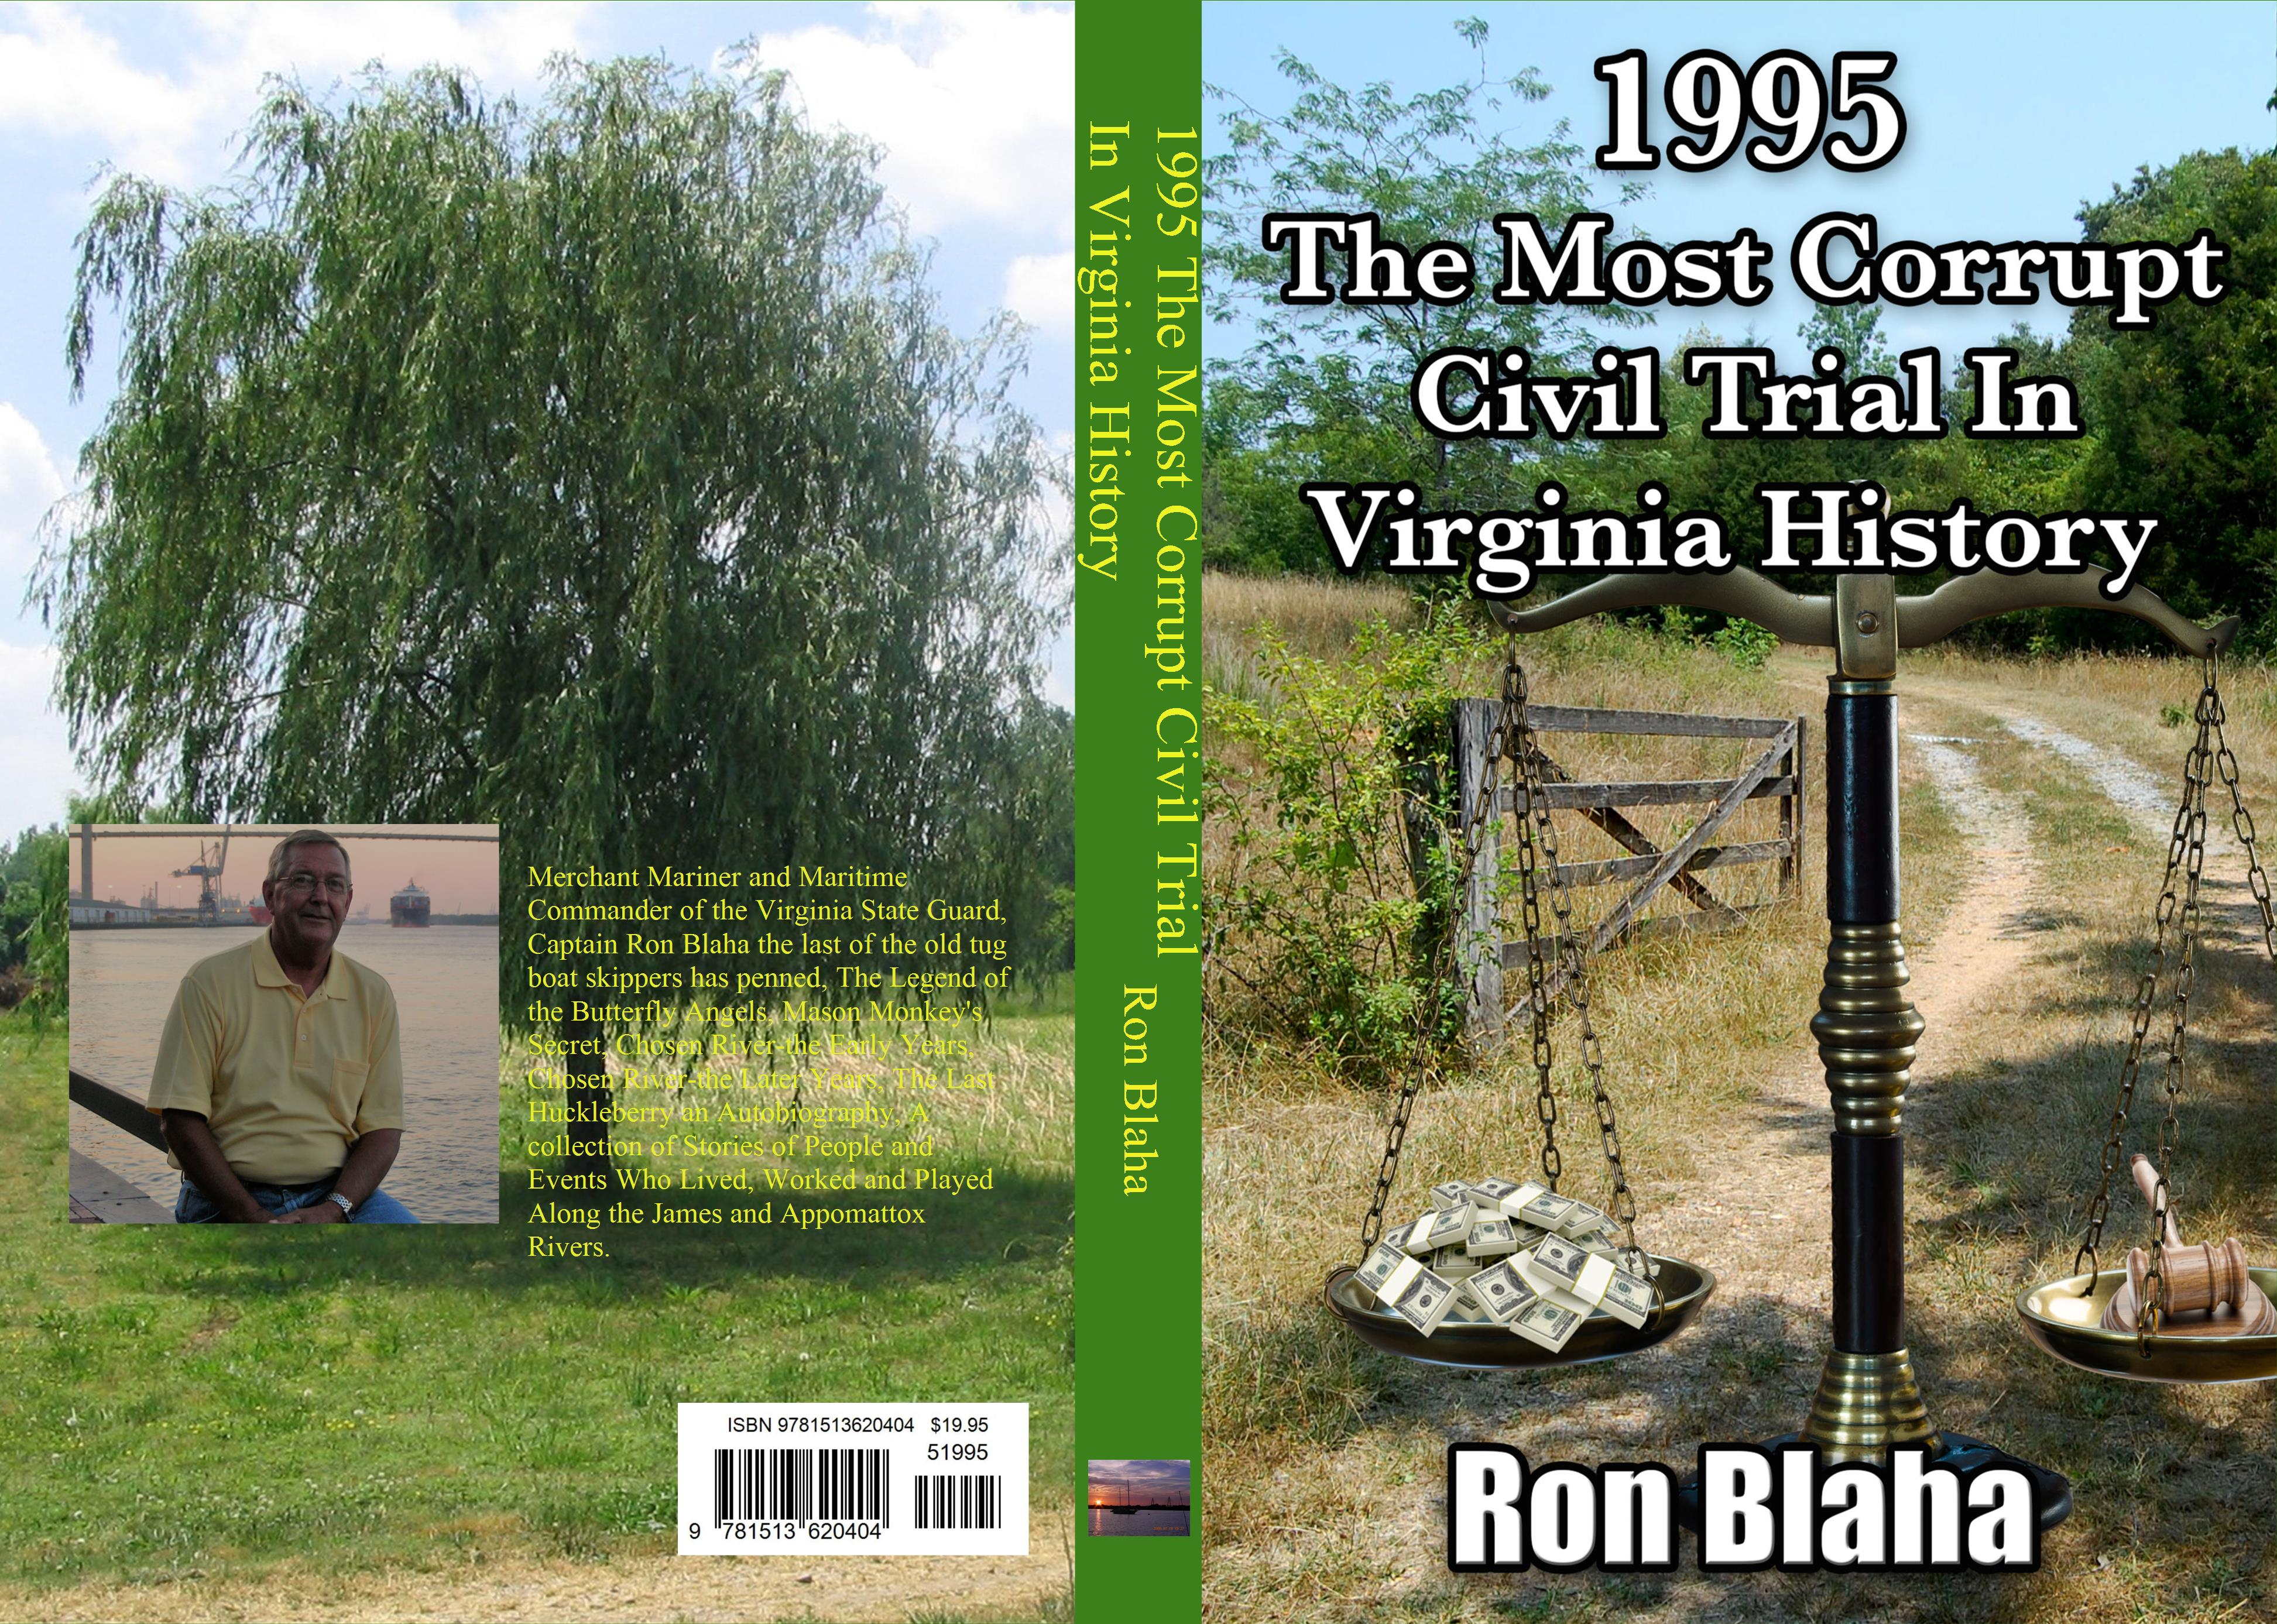 1995 The Most Corrupt Civil Trial In Virginia History cover image